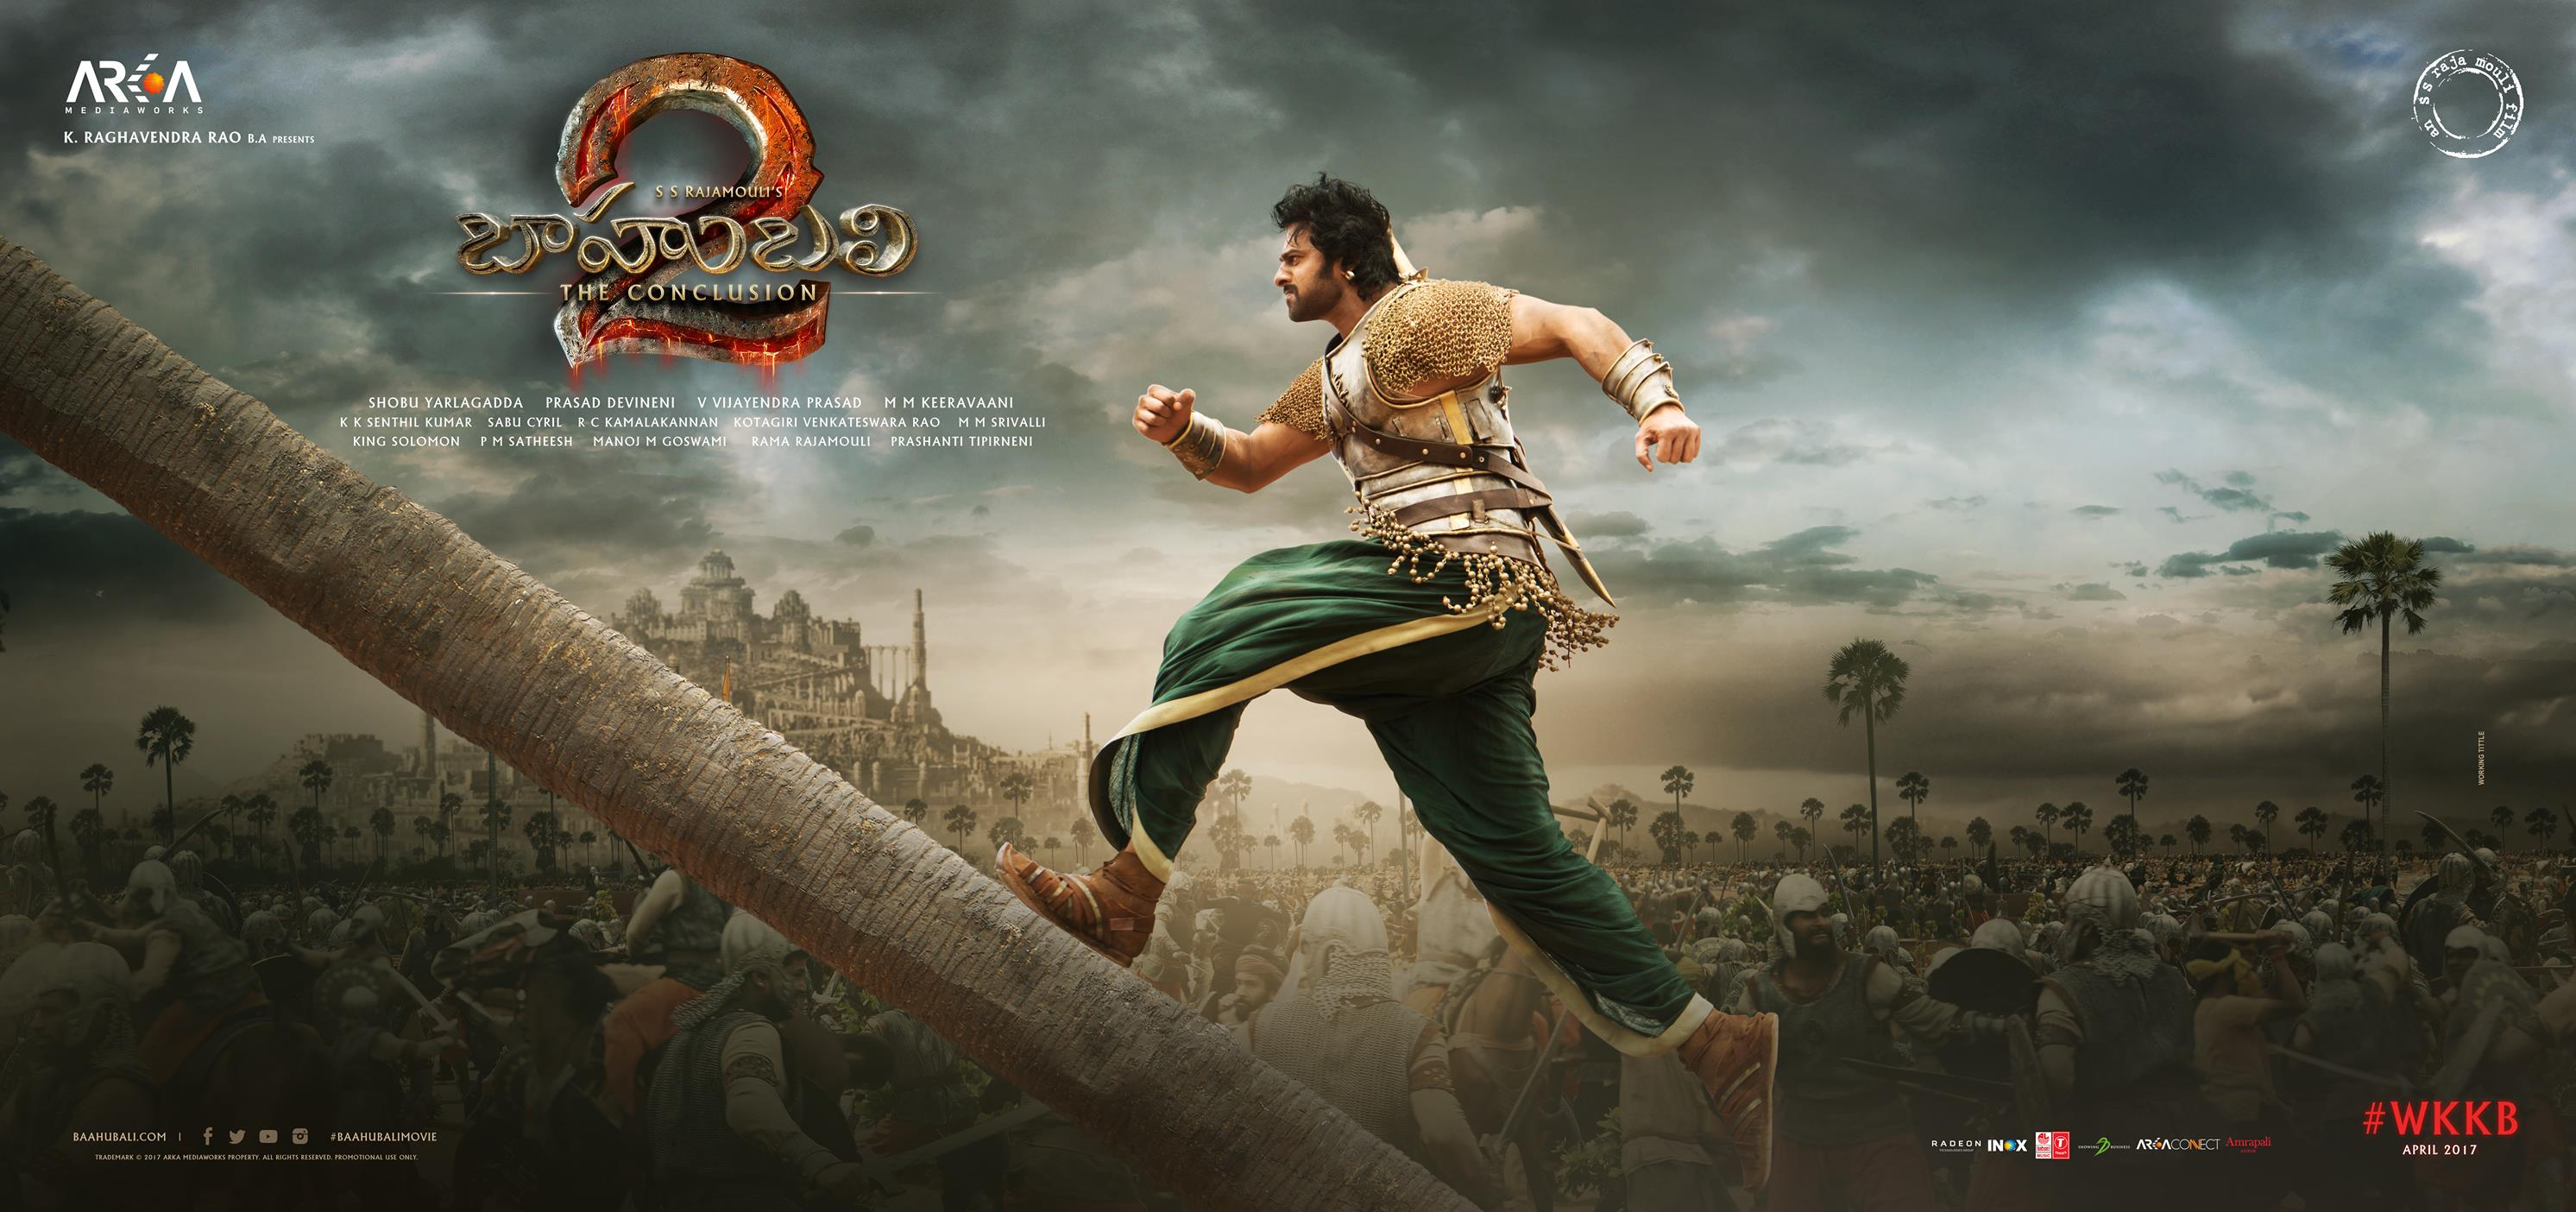 Bahubali 2 release dates - Baahubali 2 Movie Review Rating 4 5 Prabhas Rana Terrific Performance Roared At Box Office Download Image Bahubali 2 Release Dates